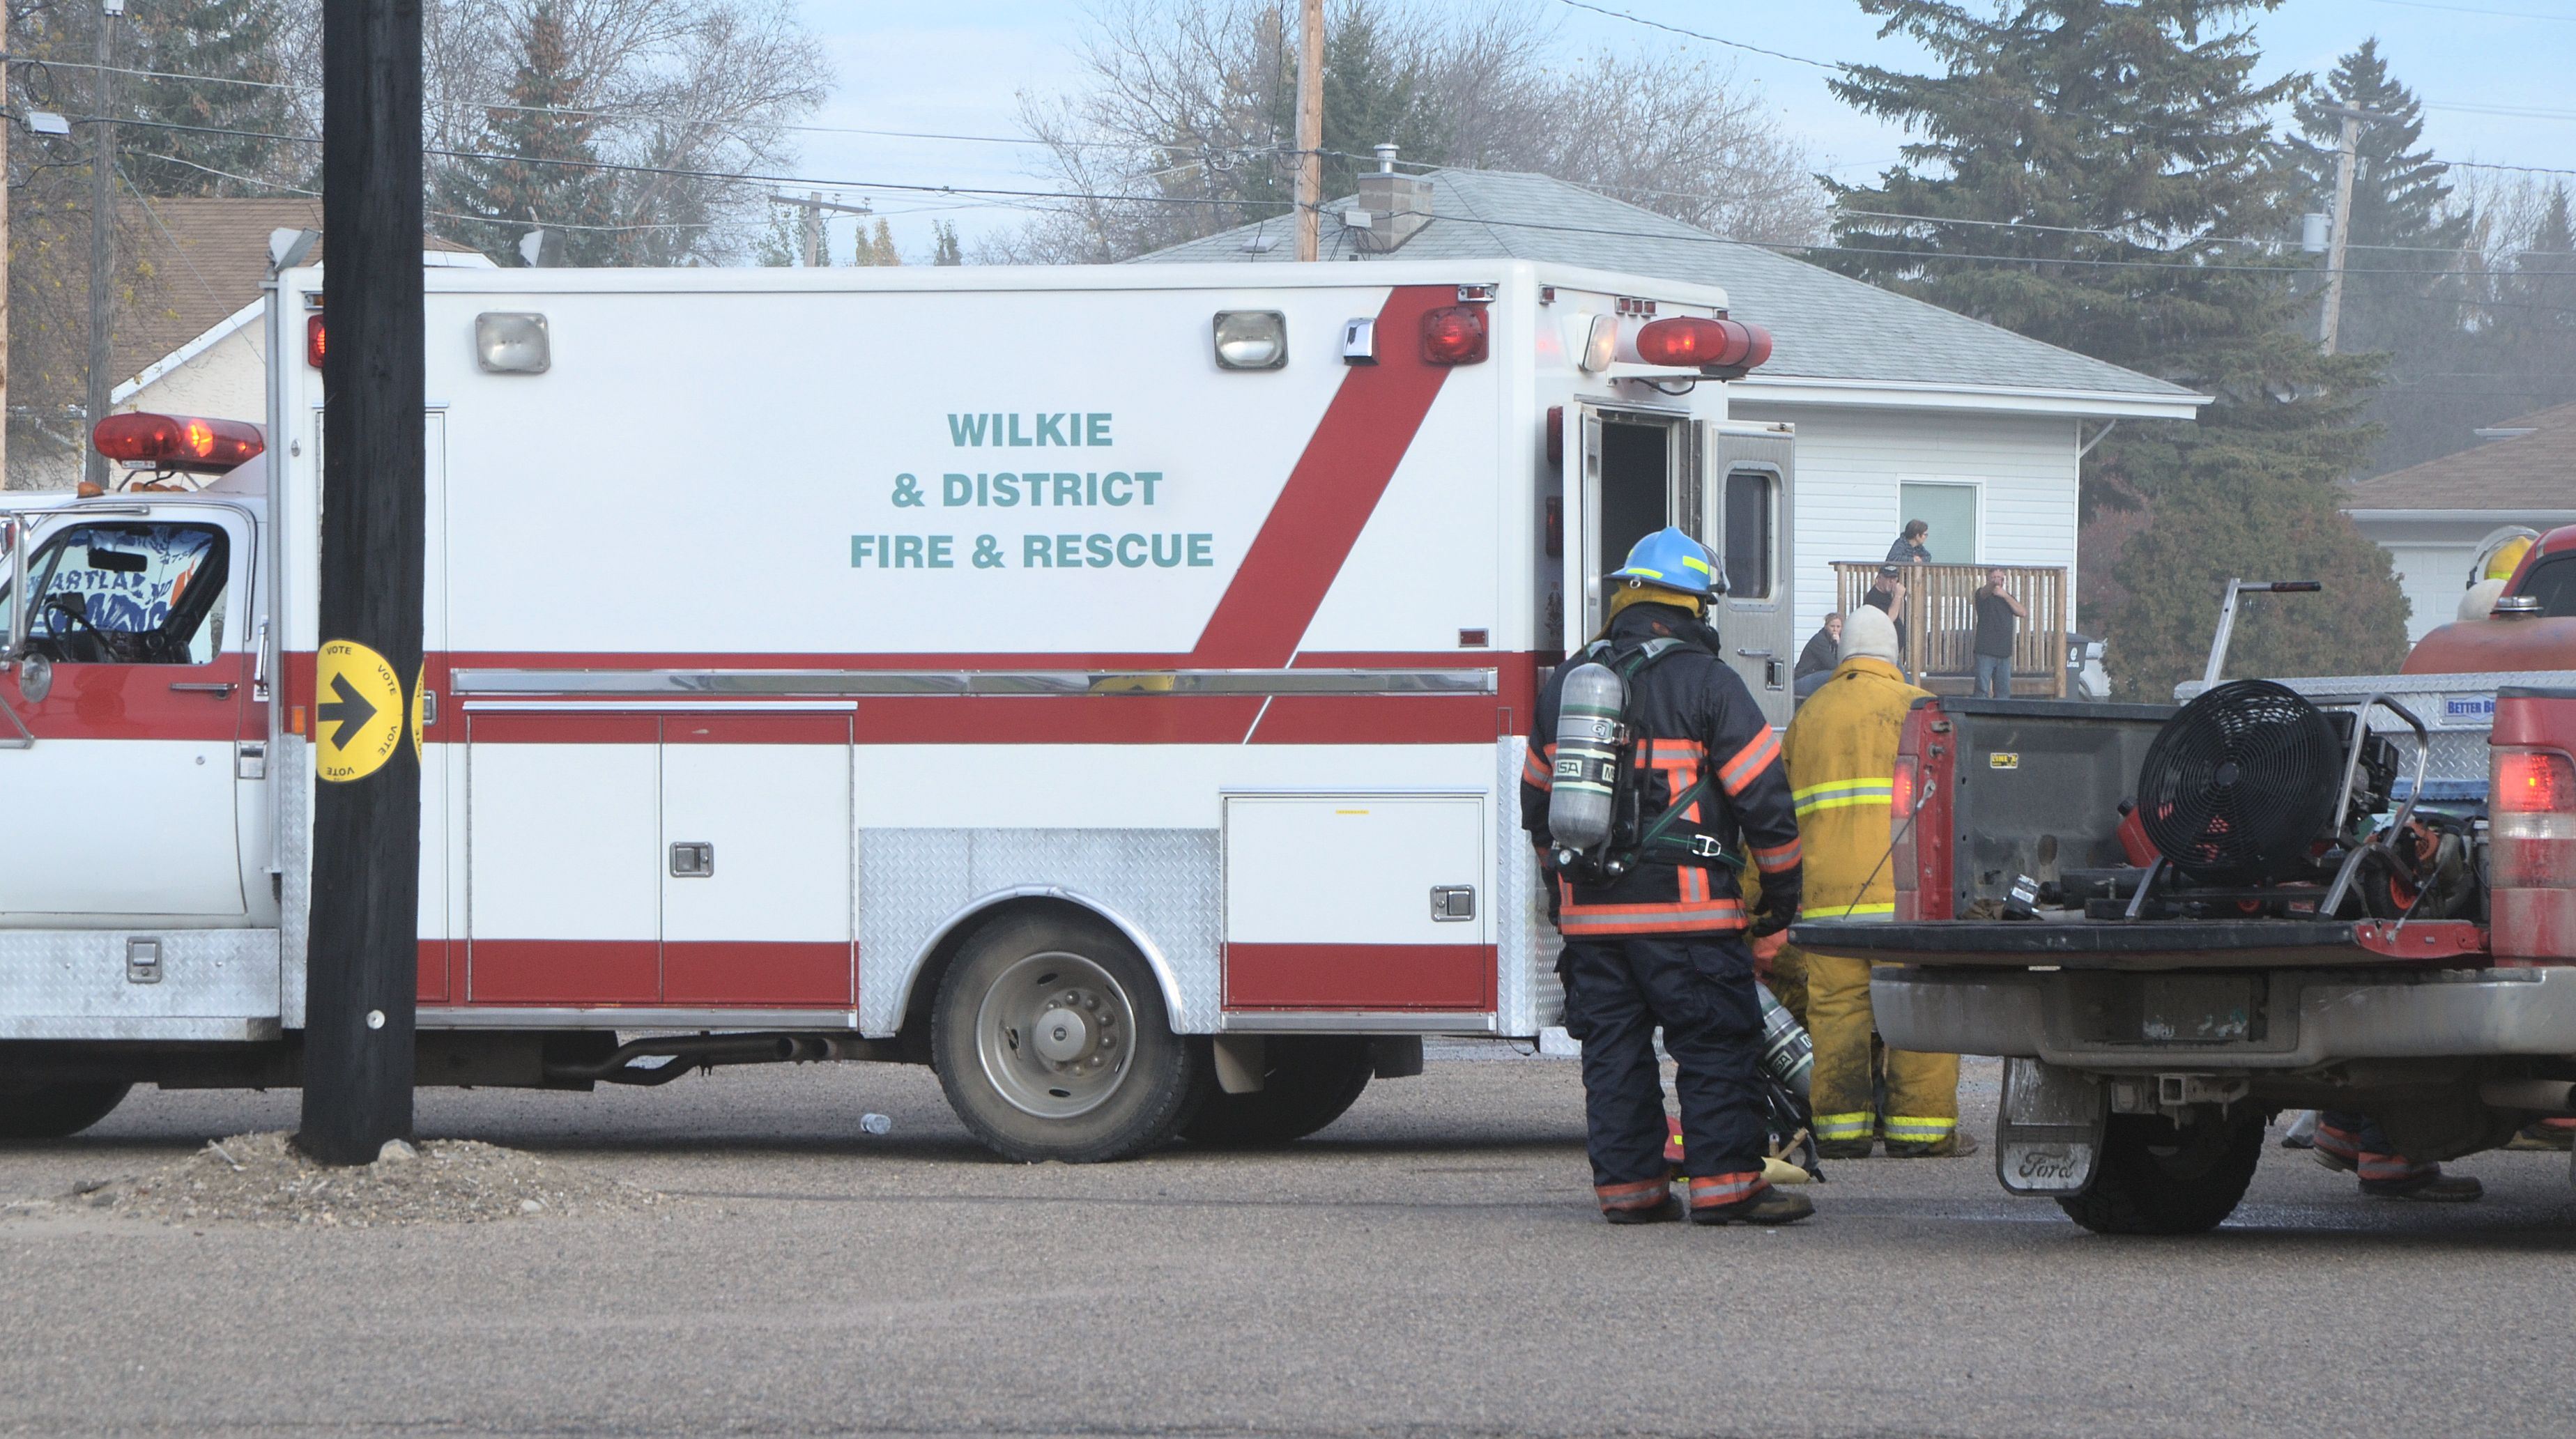 Wilkie SK arena fire